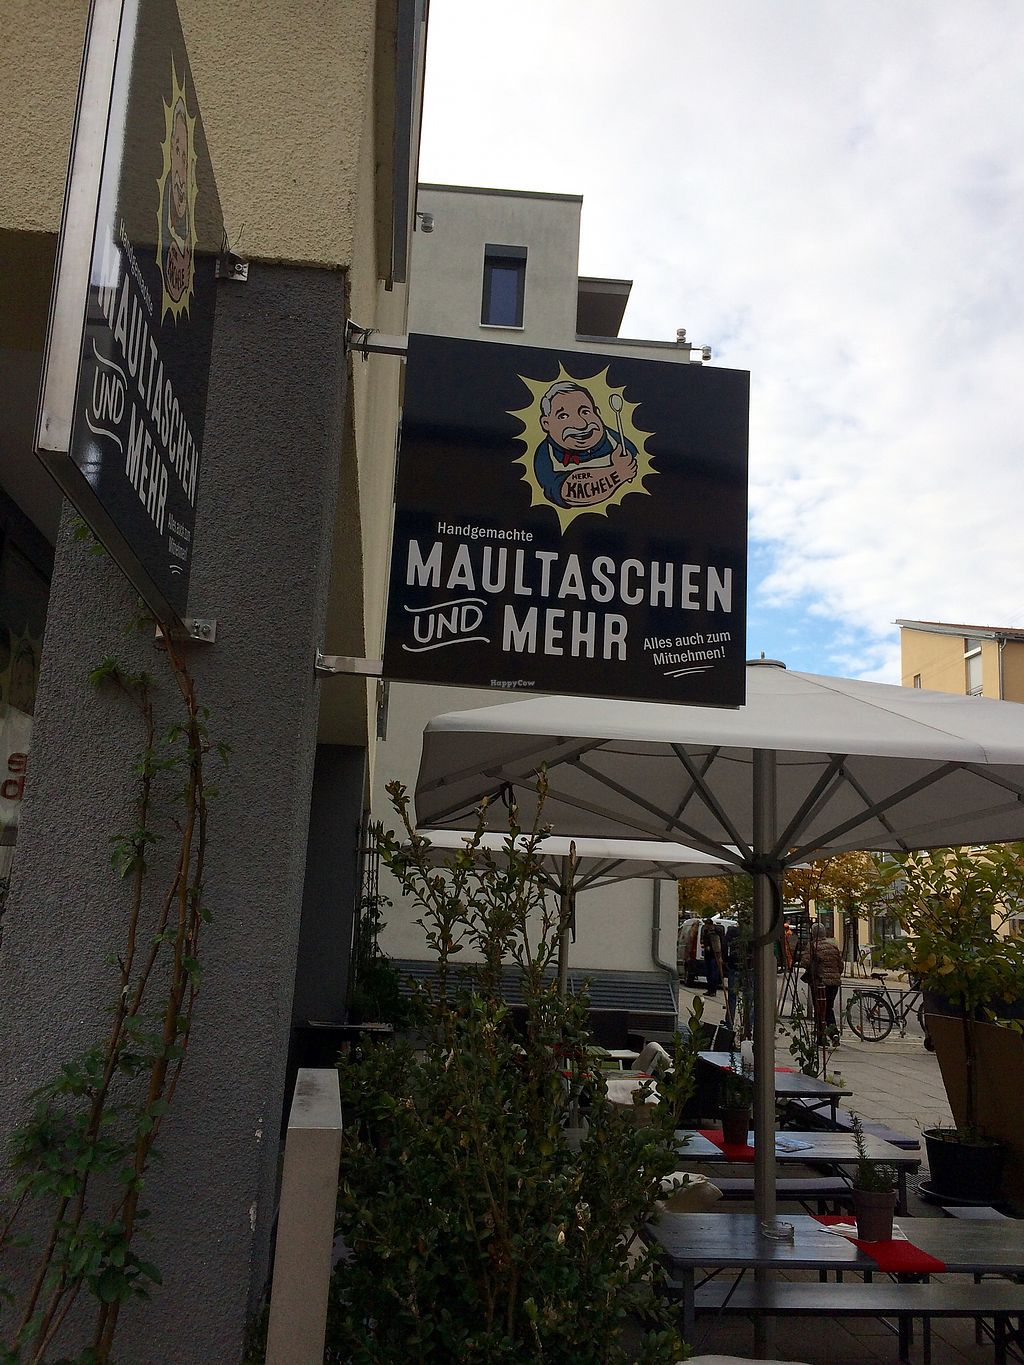 """Photo of Maultaschen und Mehr   by <a href=""""/members/profile/Carissima"""">Carissima</a> <br/>Exterior  <br/> October 12, 2017  - <a href='/contact/abuse/image/102761/314423'>Report</a>"""